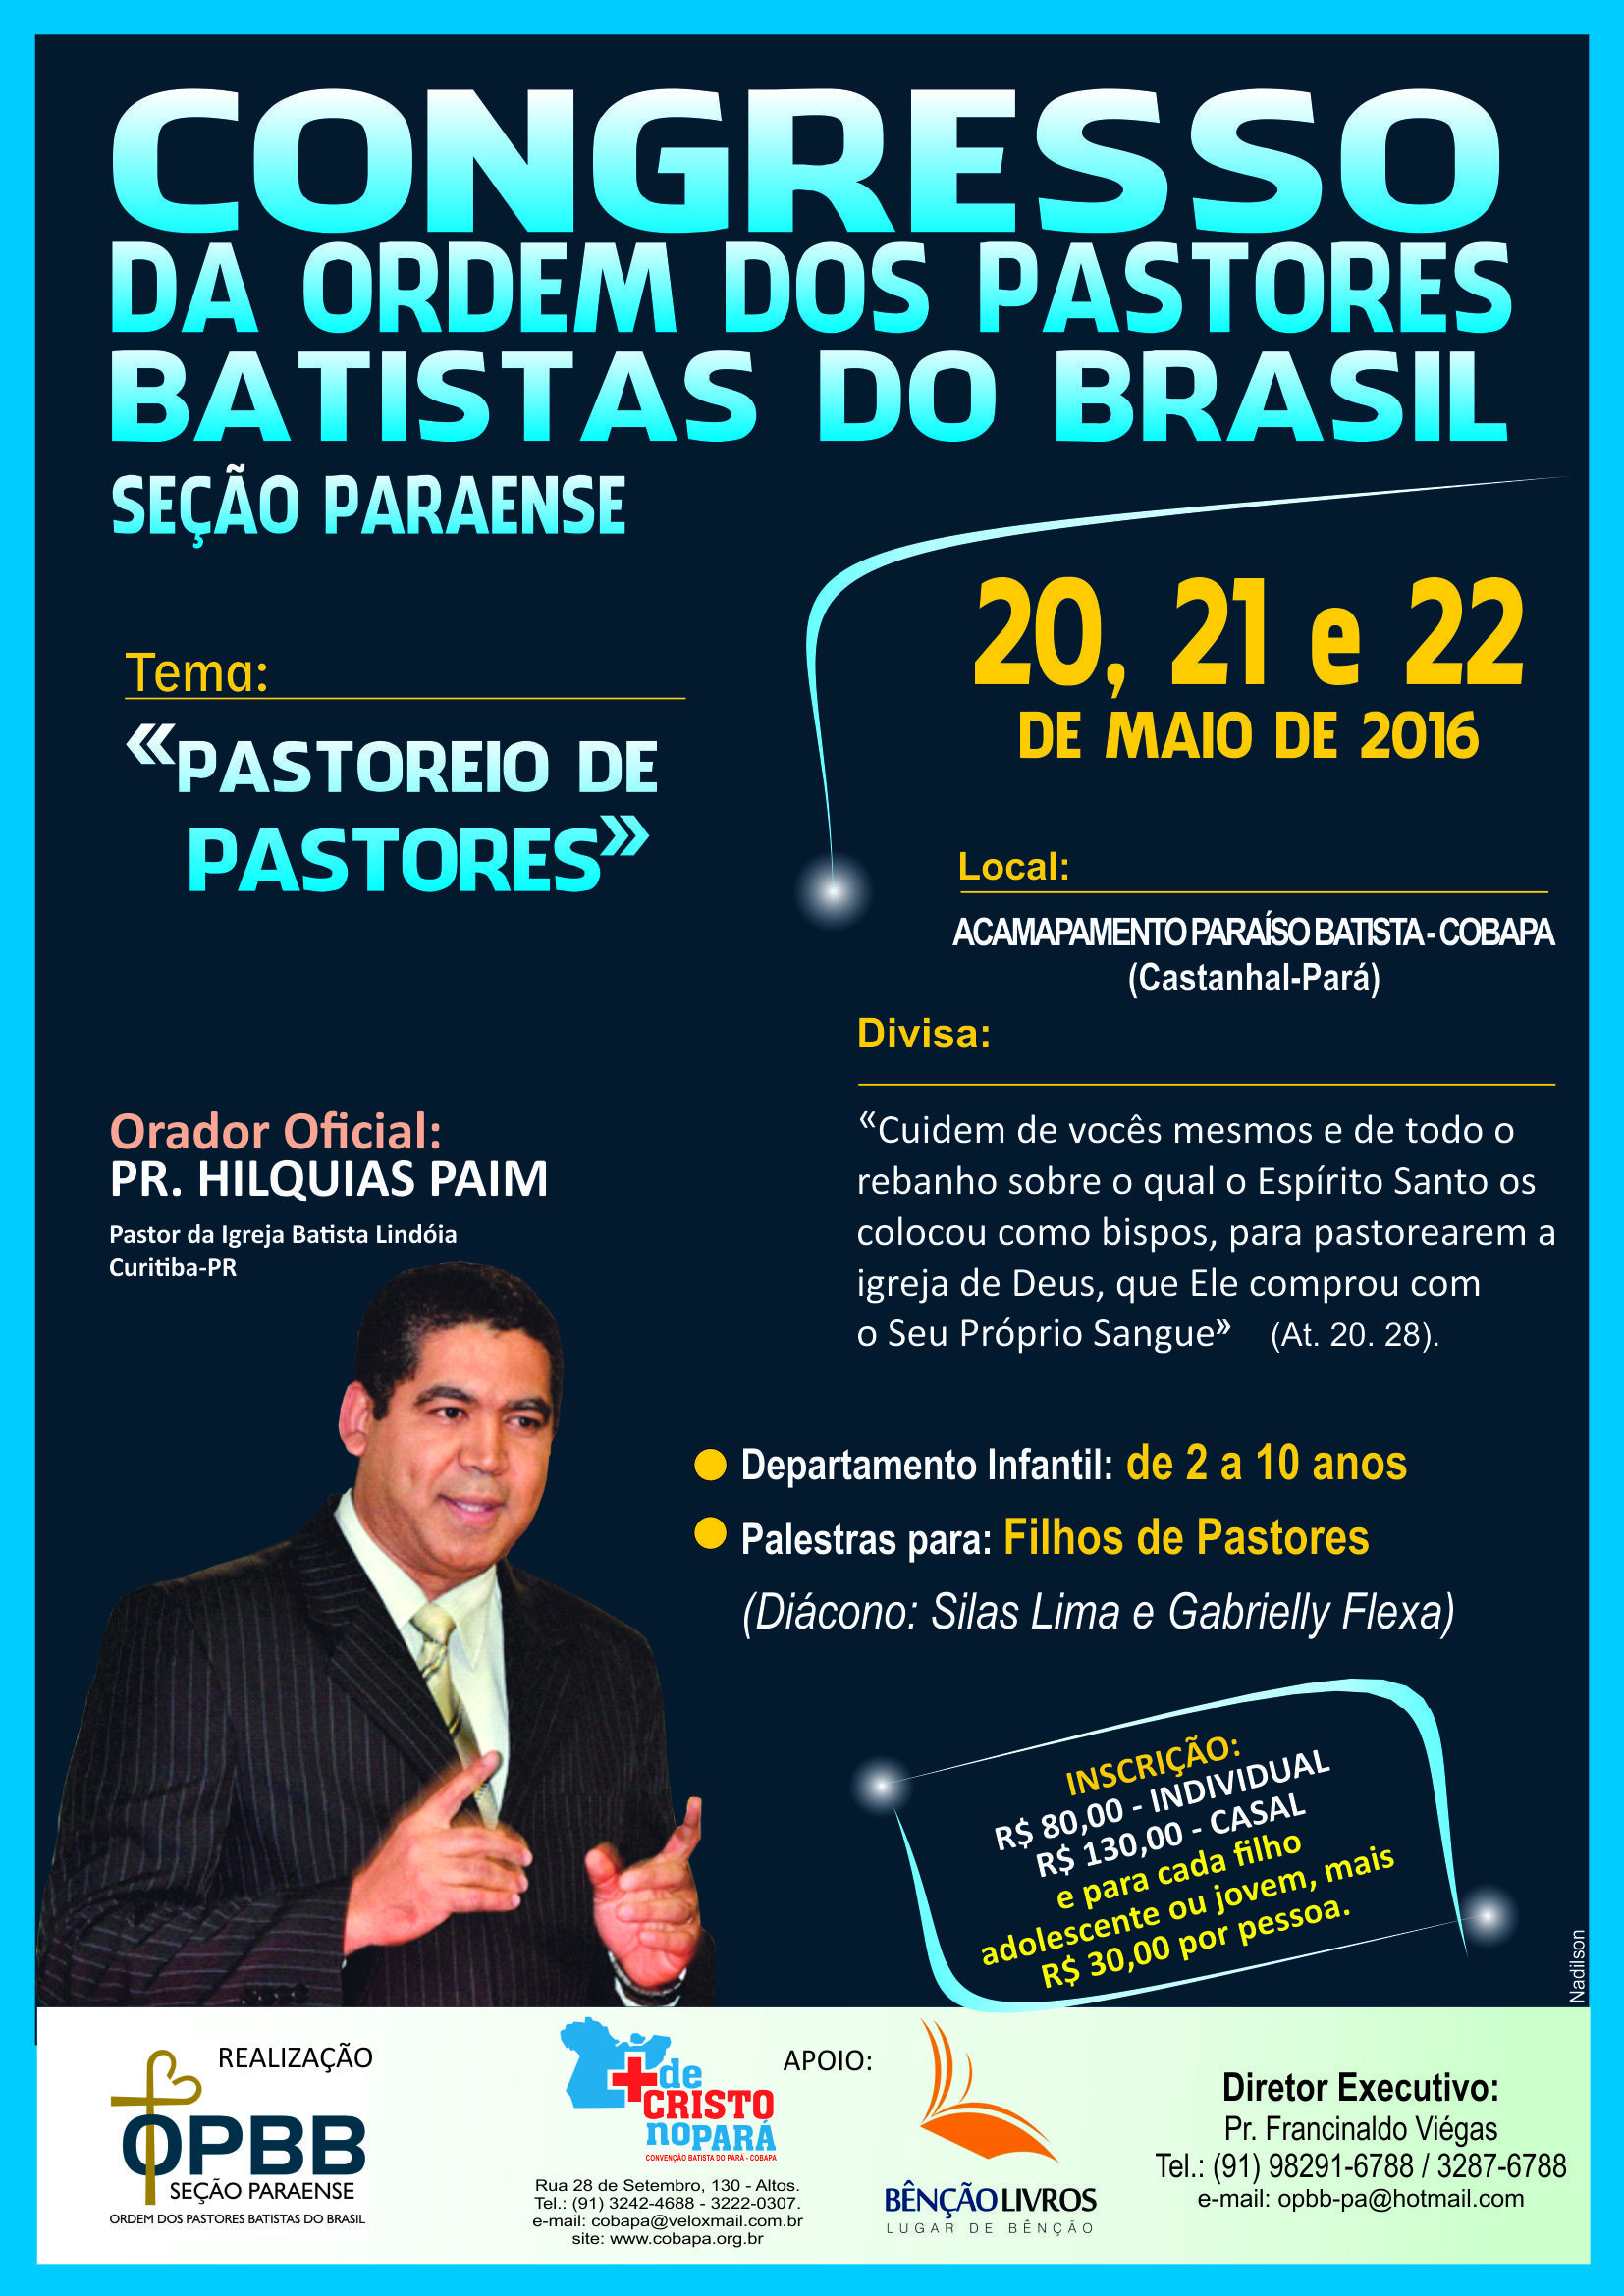 CARTAZ DO CONGRESSO DA OPBBPA revisado